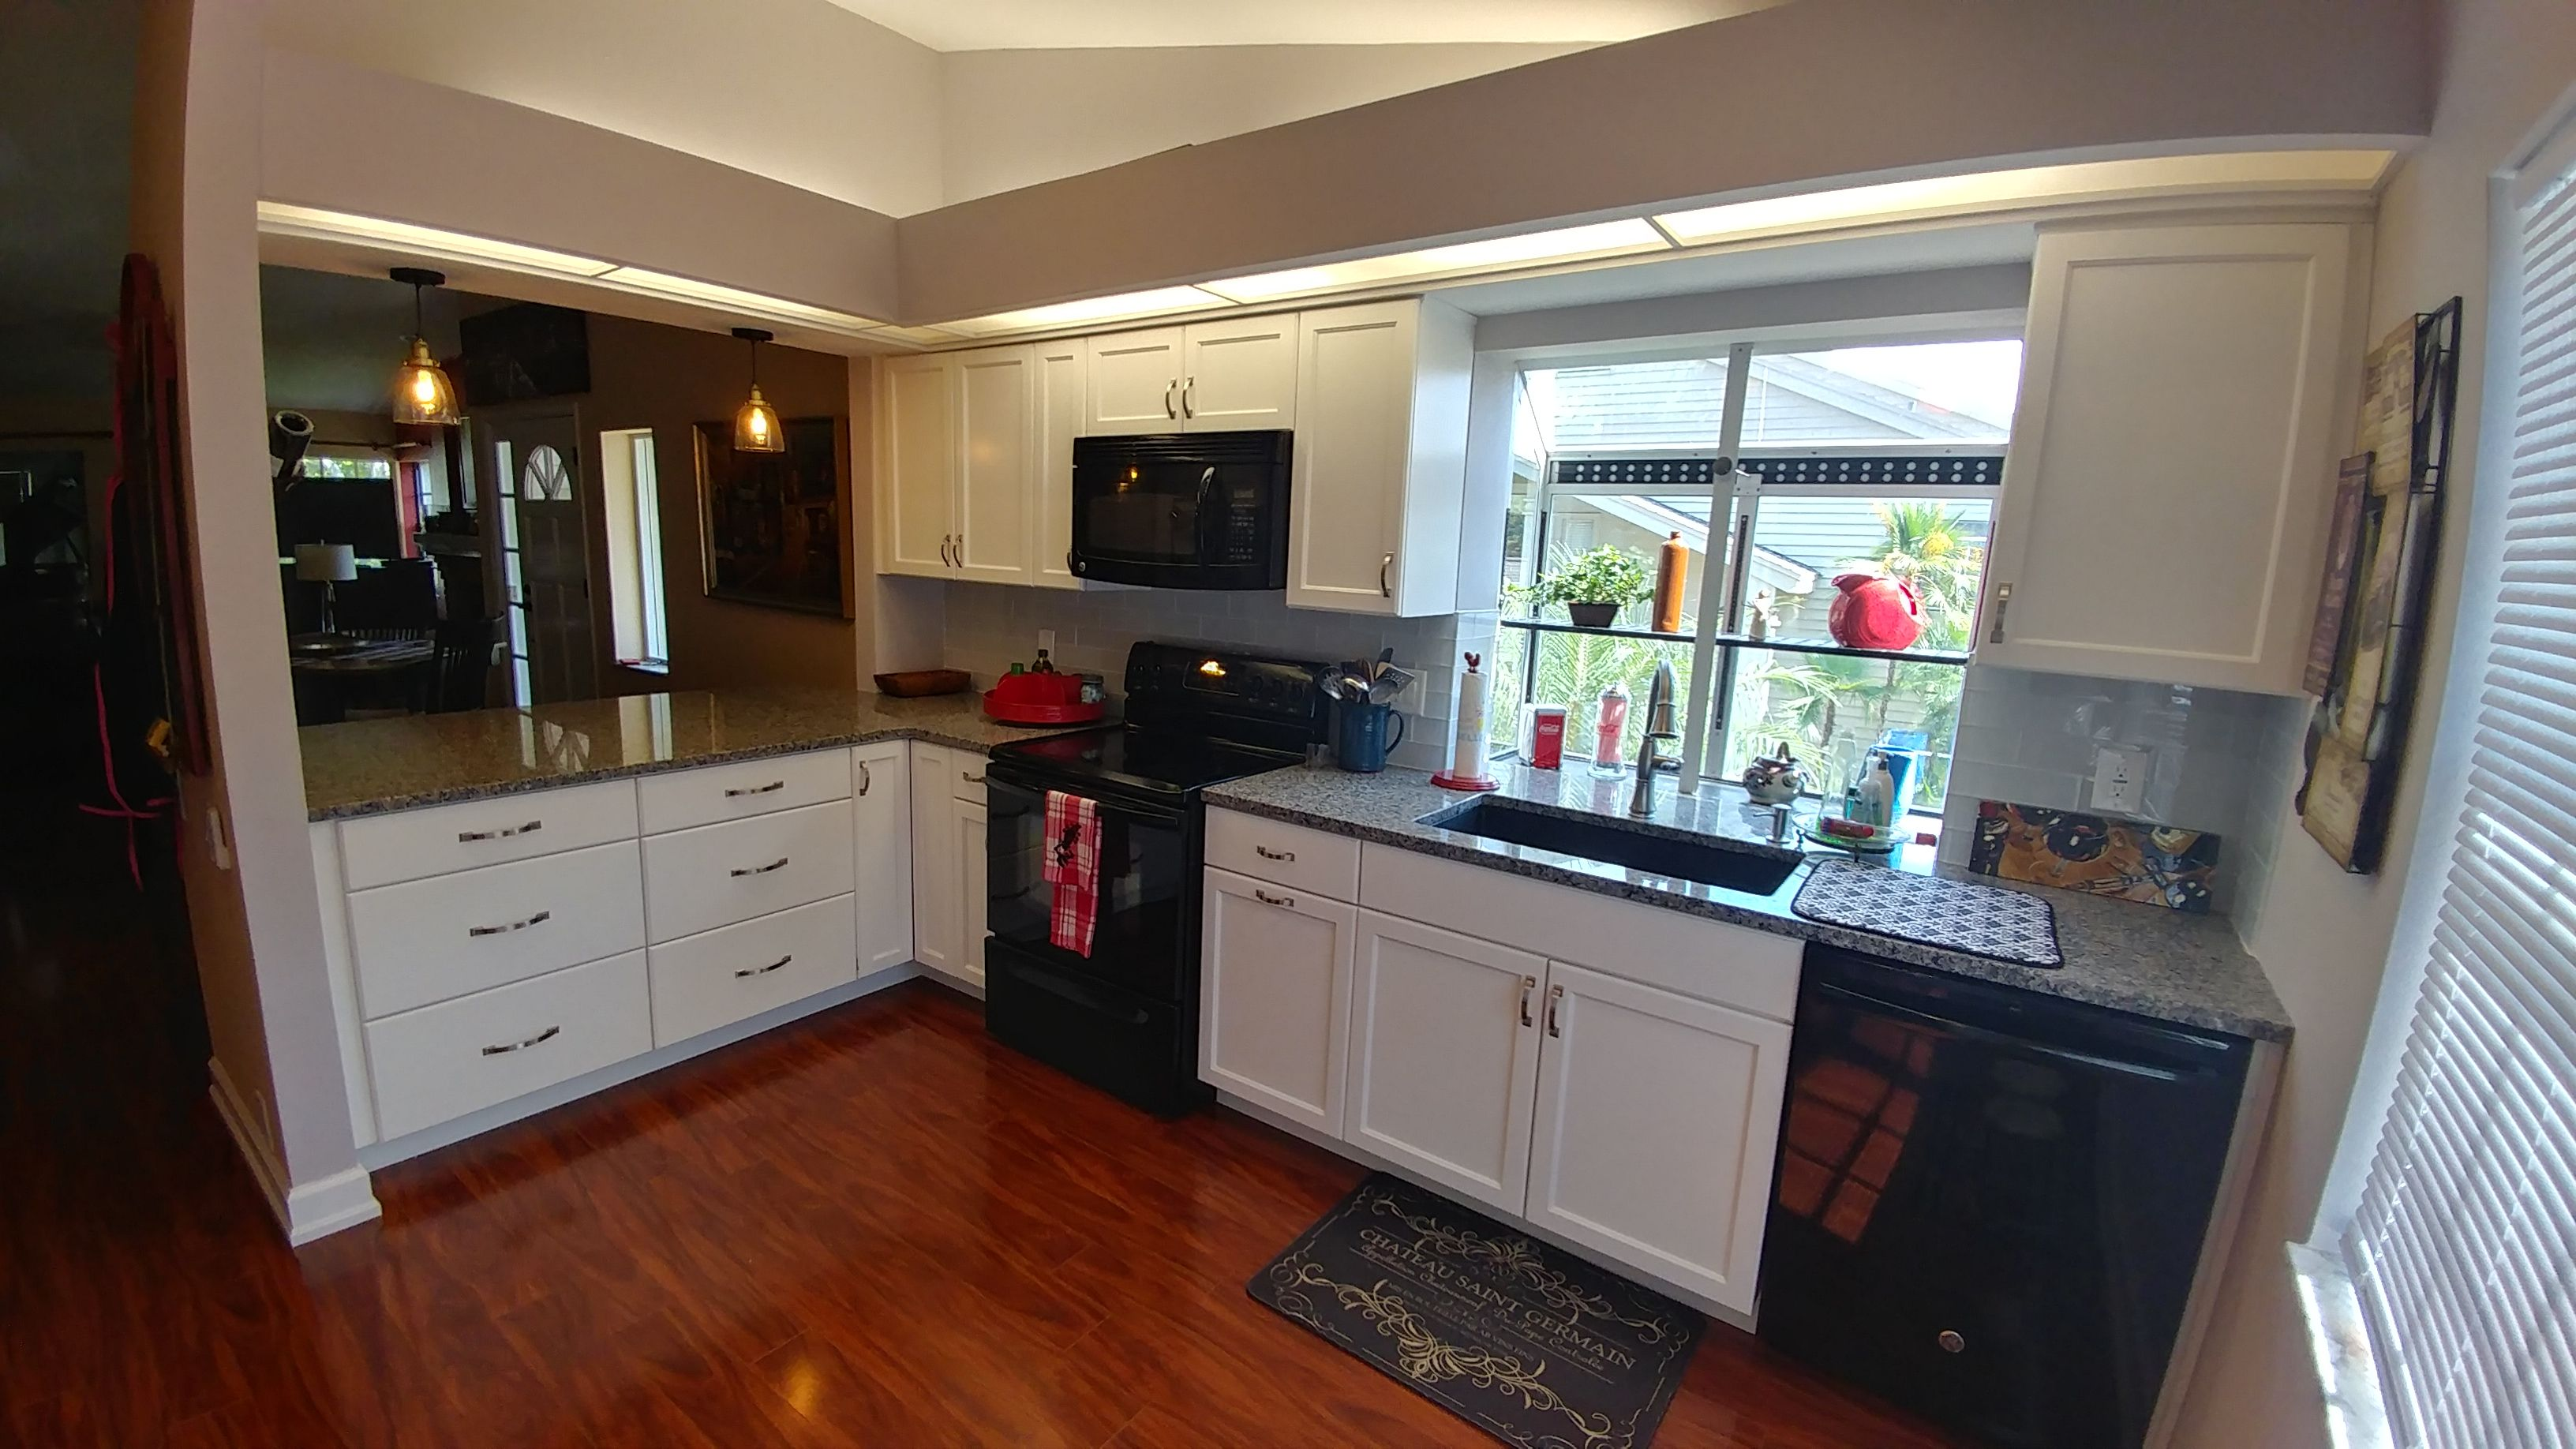 We Created A Seven Foot Pass Thru To Open Up The Kitchen To The Rest Of The Condo White Recessed Panel Cabinets With Images Black Appliances Glass Subway Tile White Glass